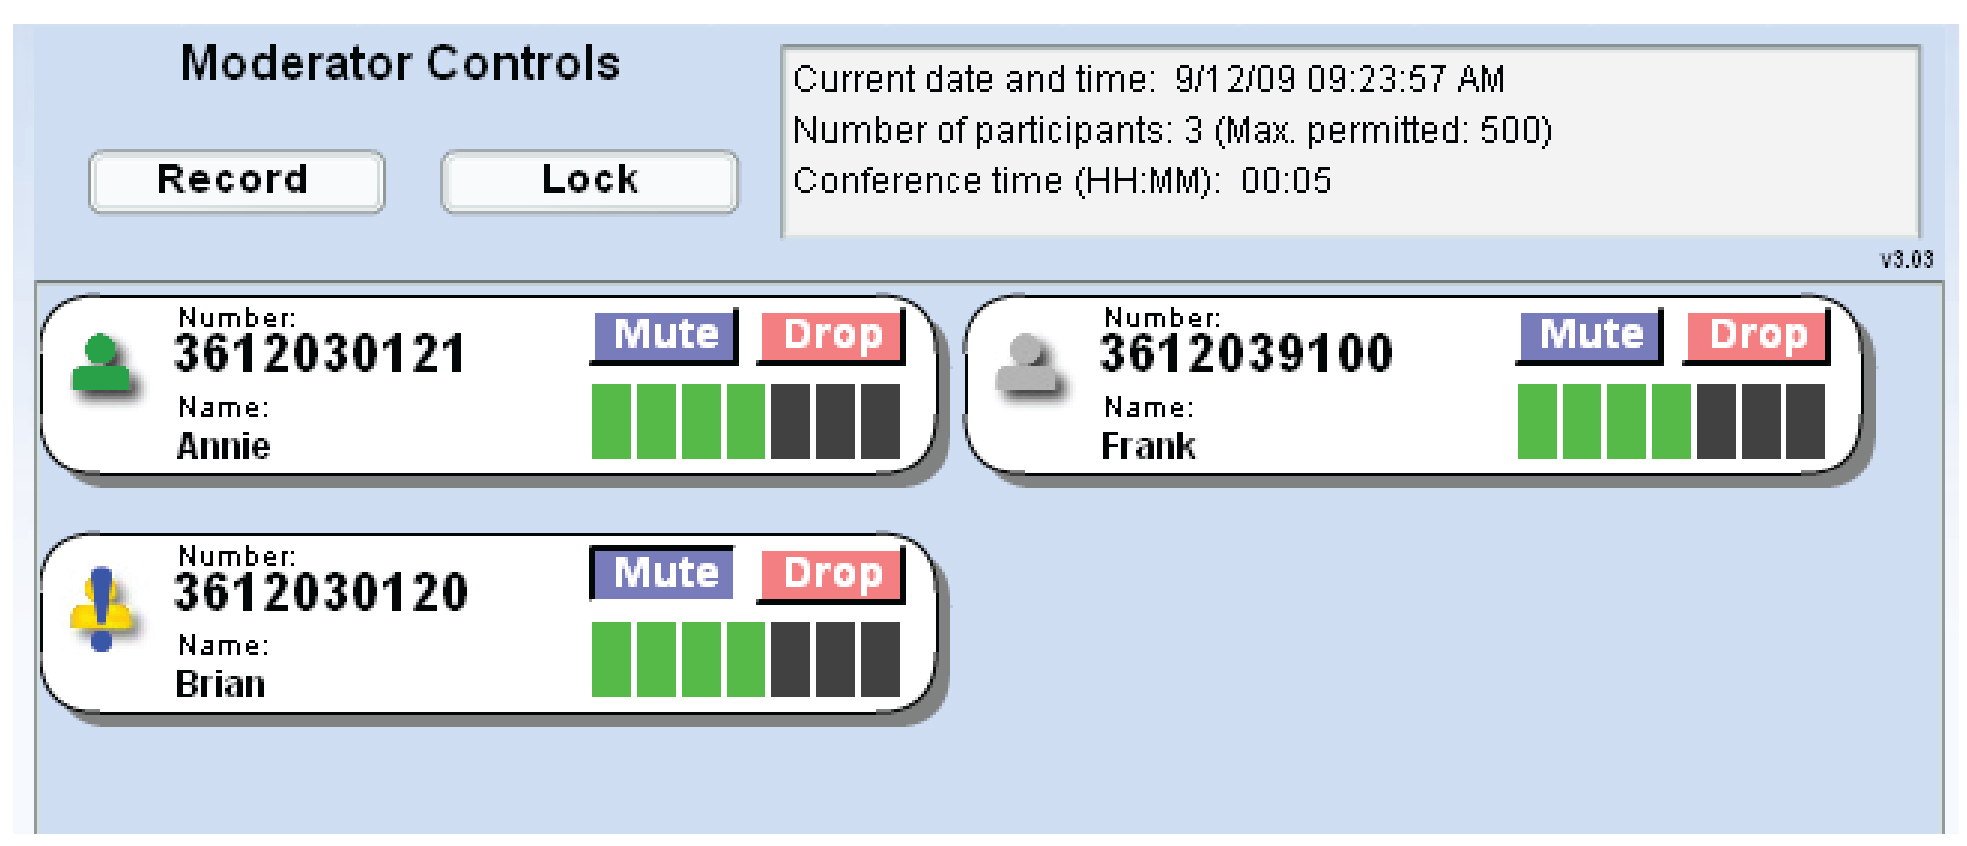 ConferenceConnect Moderator Controls